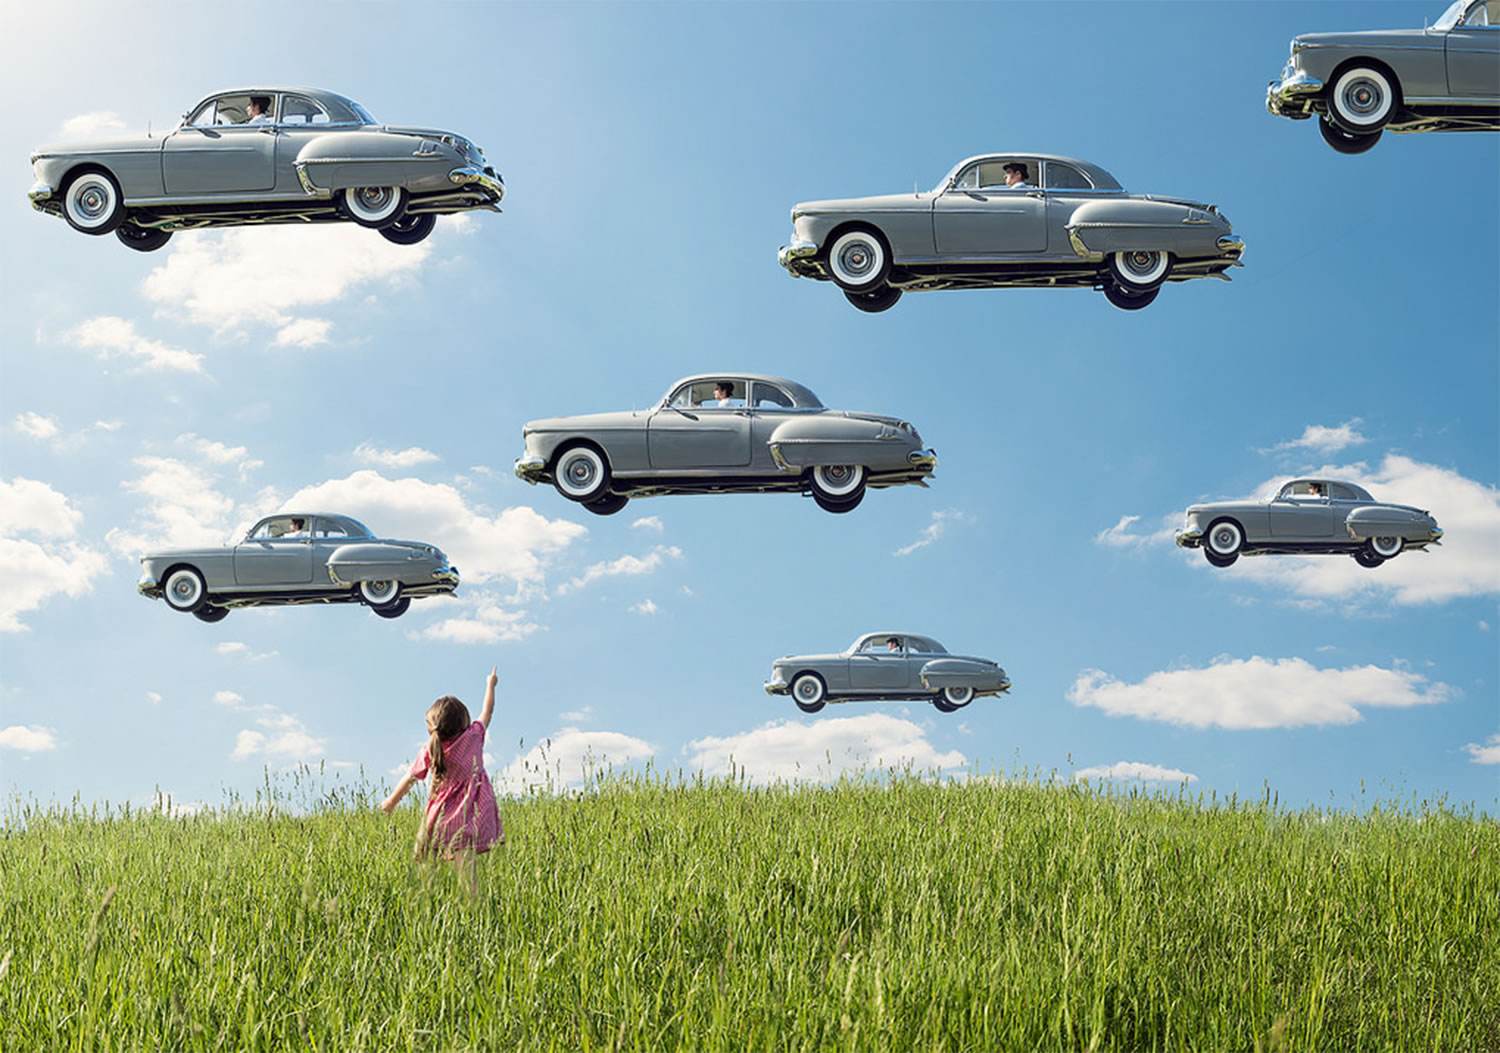 cars in the sky, rene magritte inspired